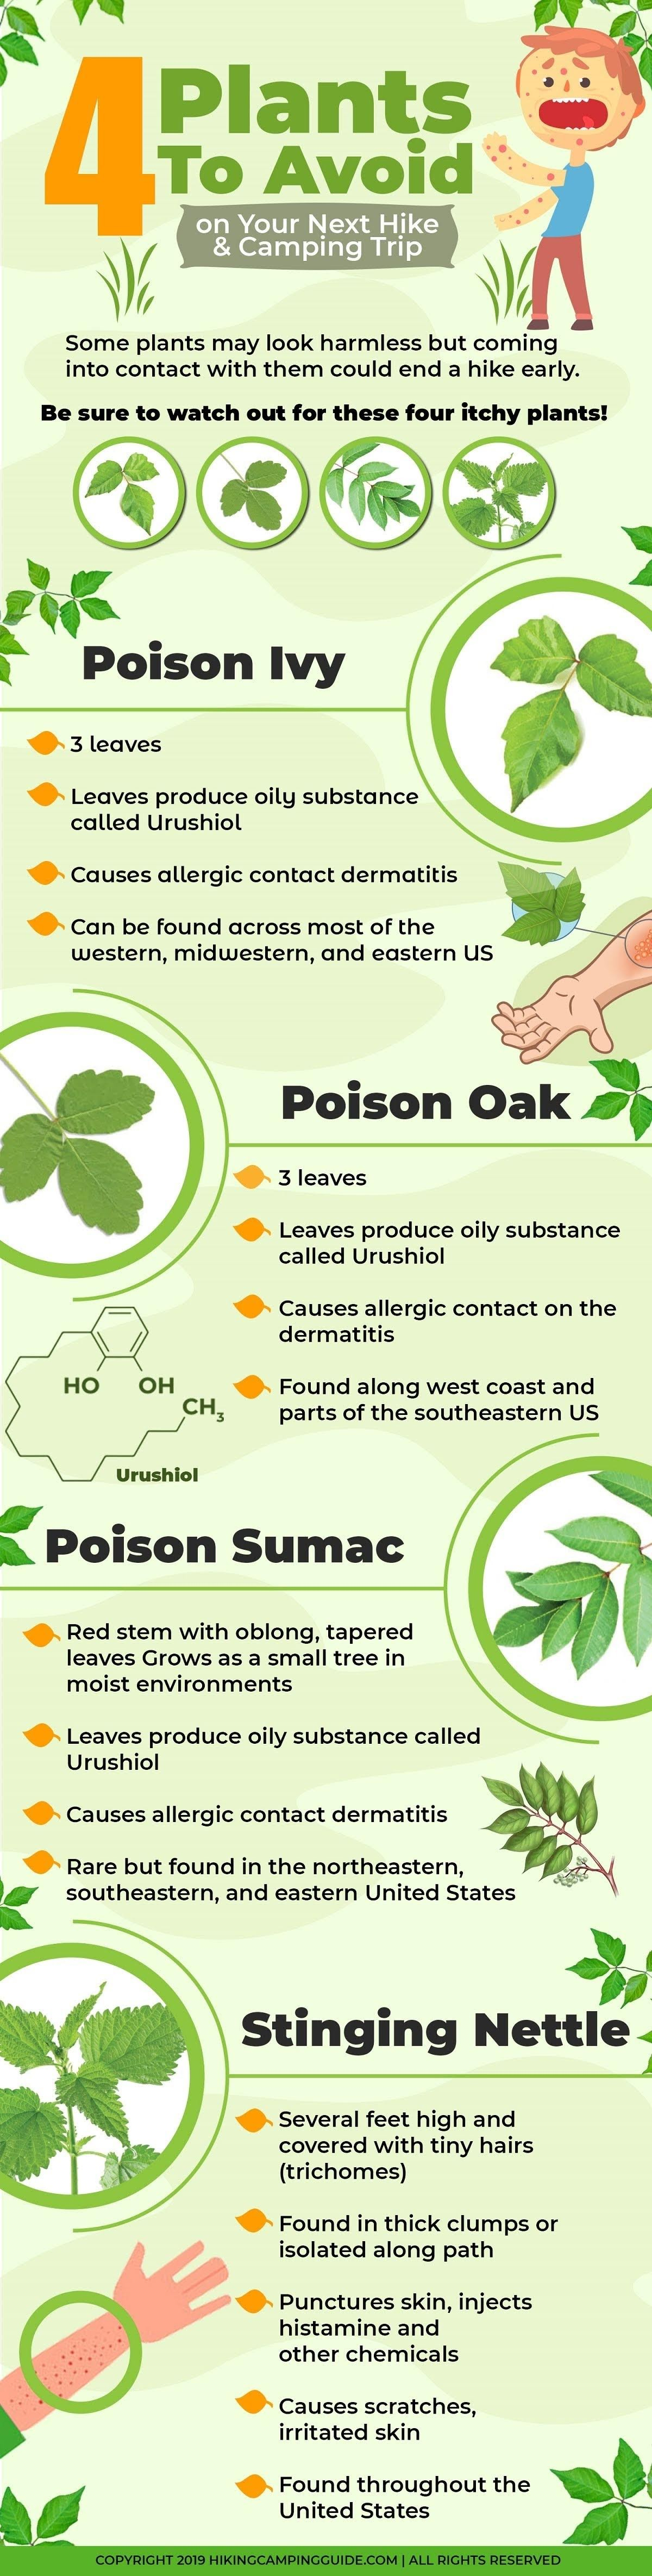 4 Plants to Avoid on Your Next Hike & Camping Trip #infographic